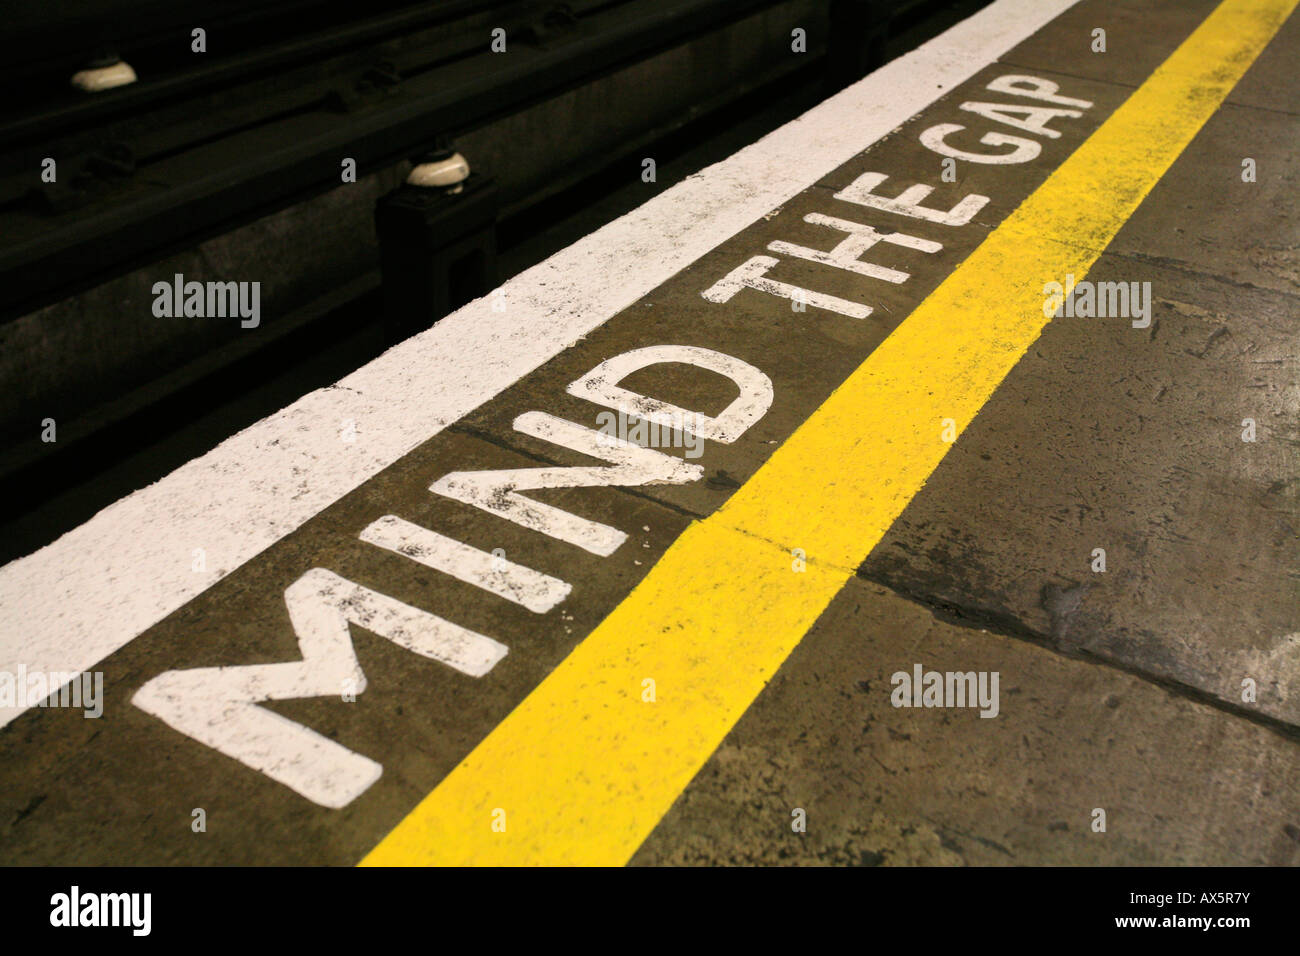 Mind the Gap - safety reminder at South Wimbledon underground station, London, England, UK, Europe - Stock Image